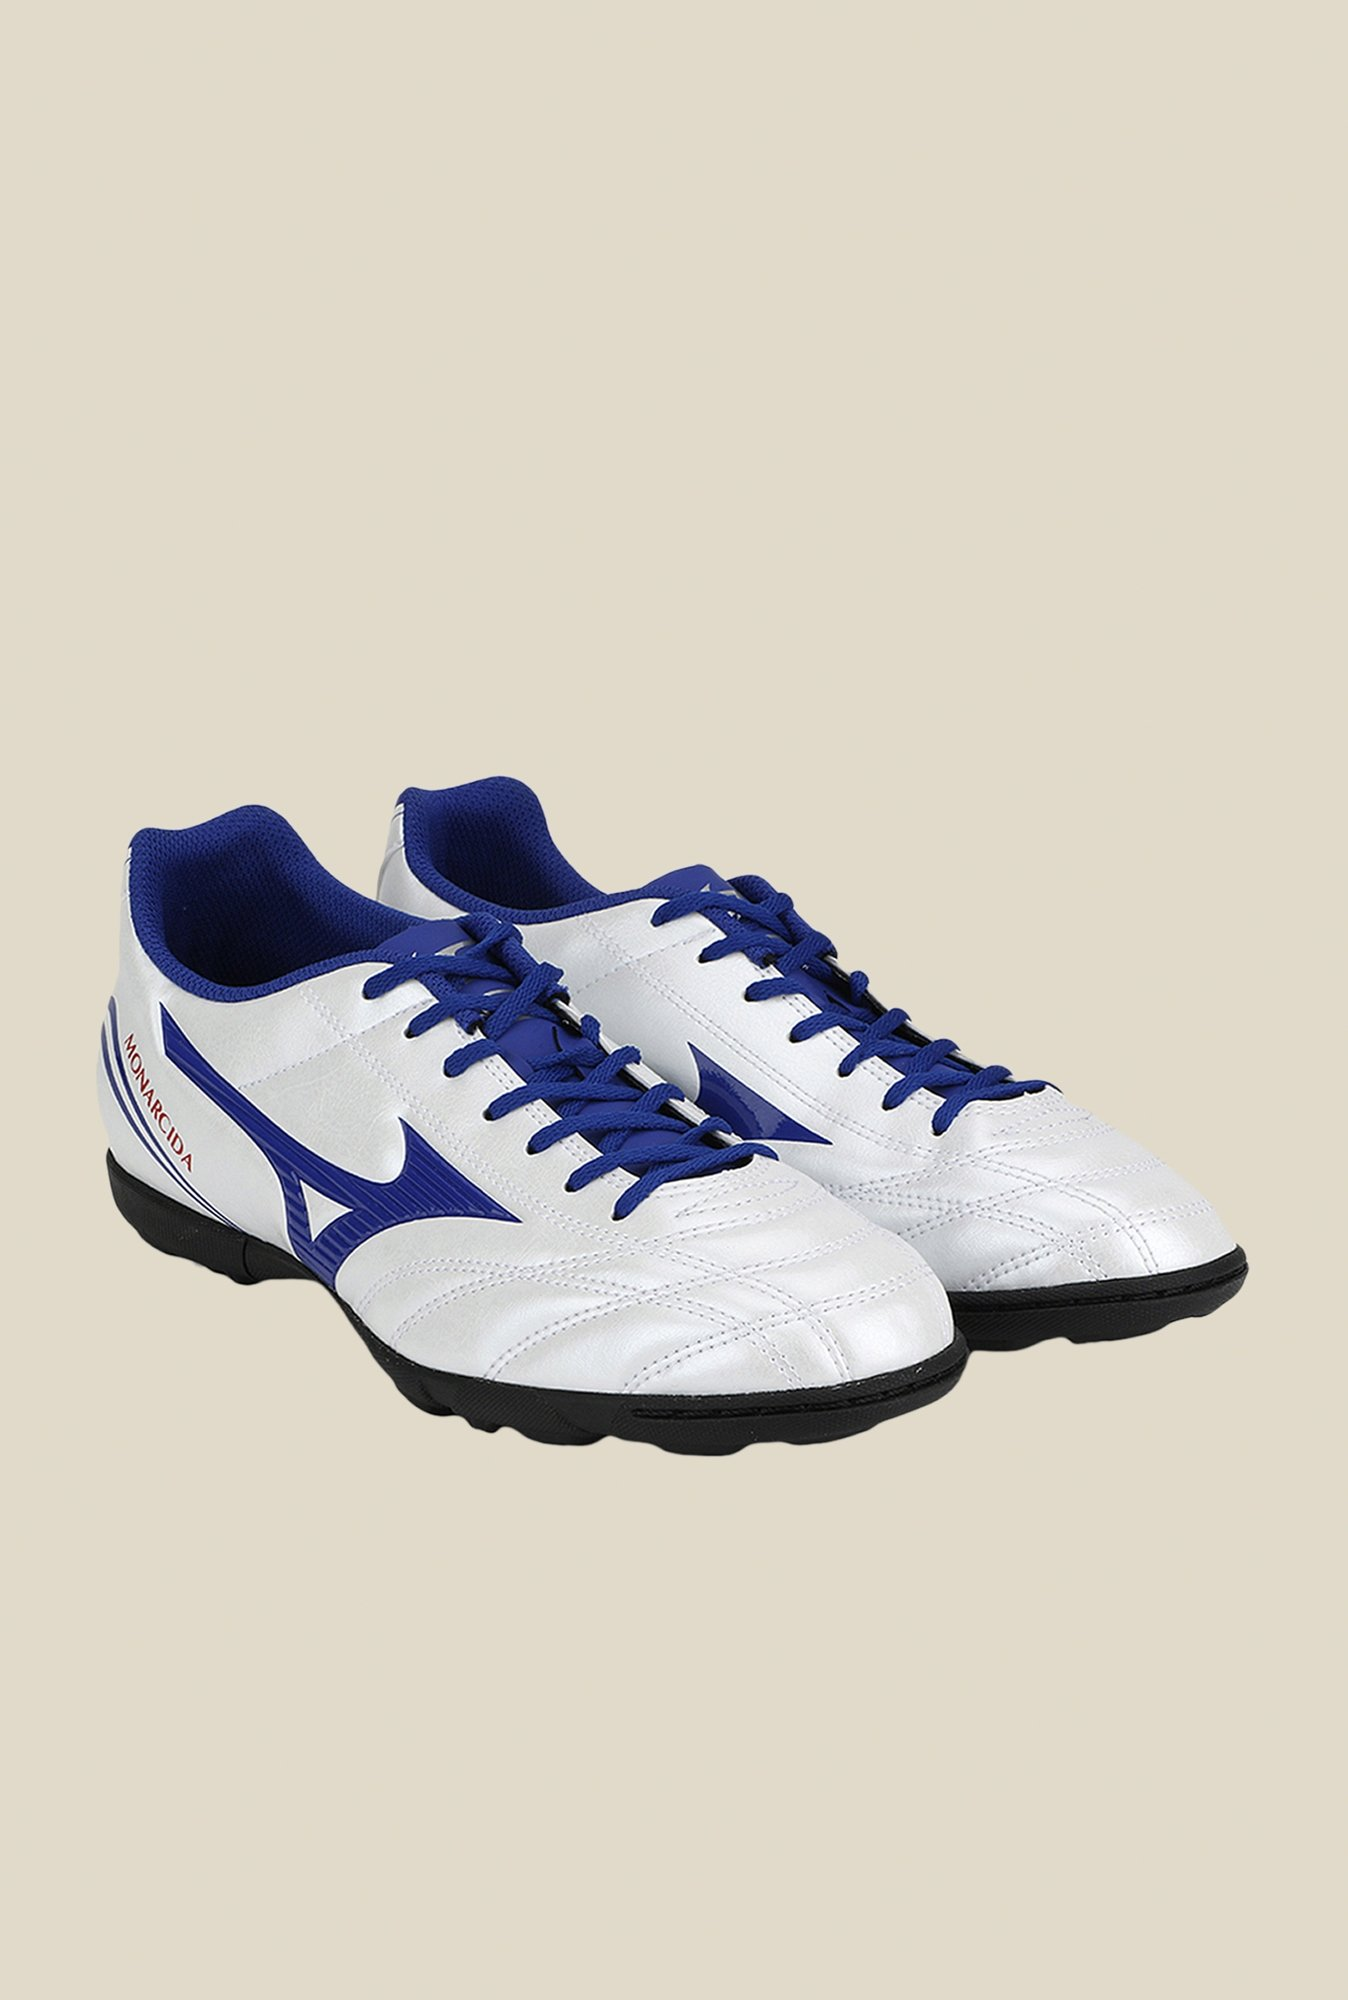 Mizuno Monarcida FS AS White Football Shoes